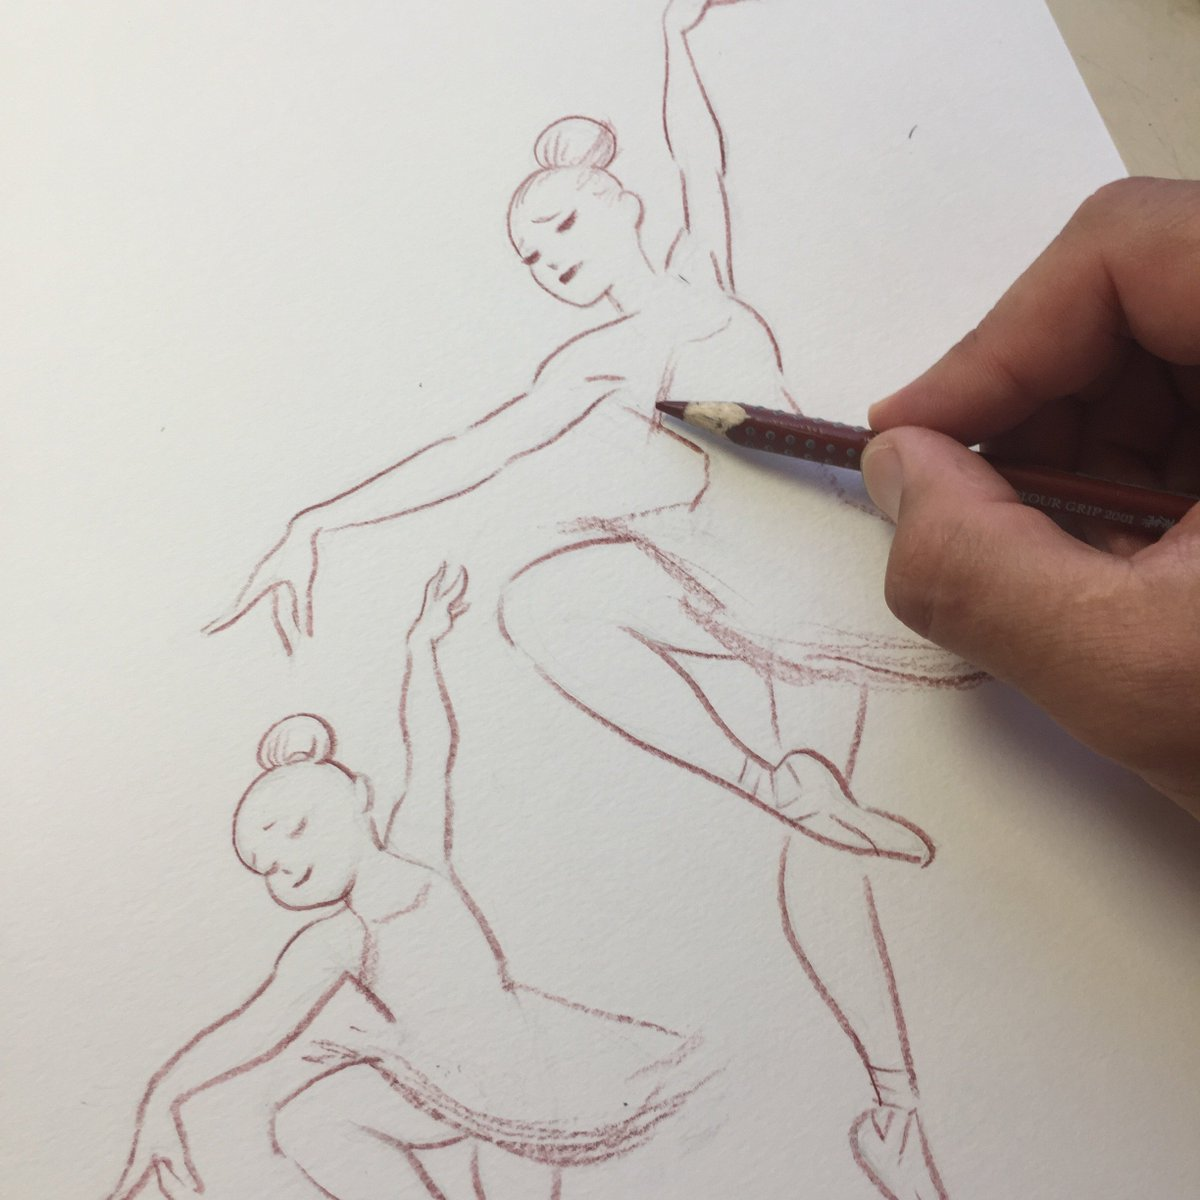 Enrico marini on twitter ballerinas pencils wip for a dance